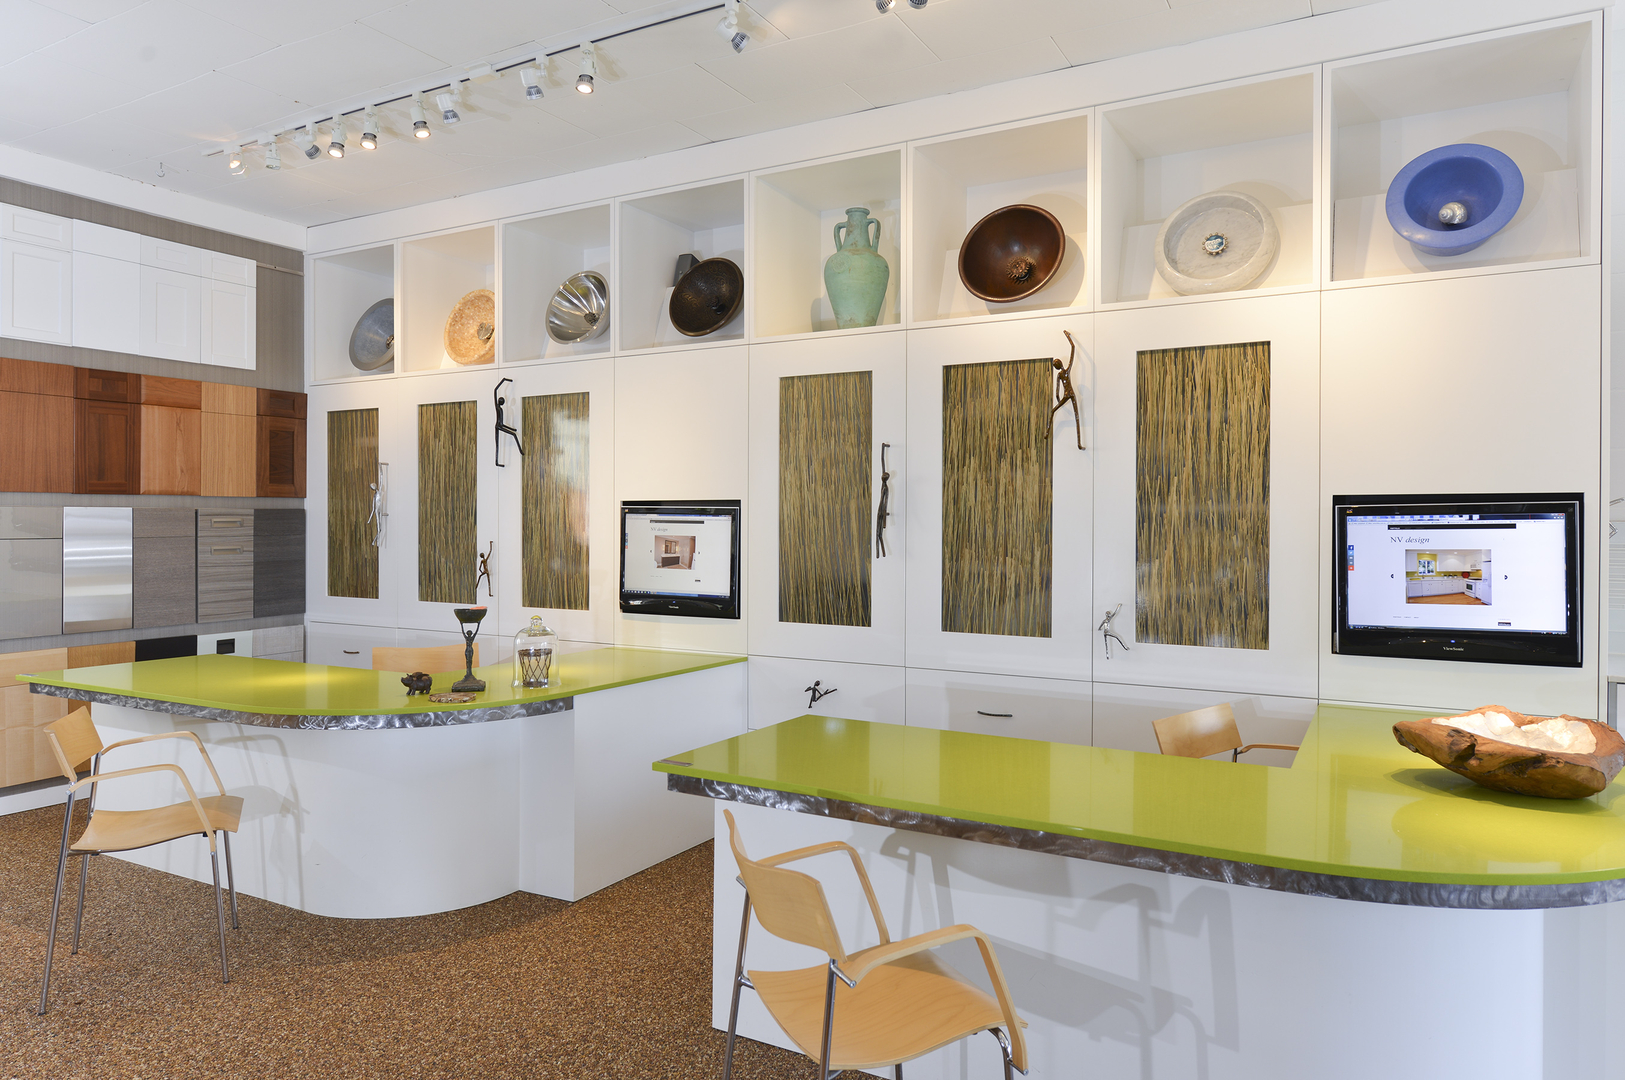 Kitchen And Bath Cabinets And Tile Design Shop, Custom Cabinets ...